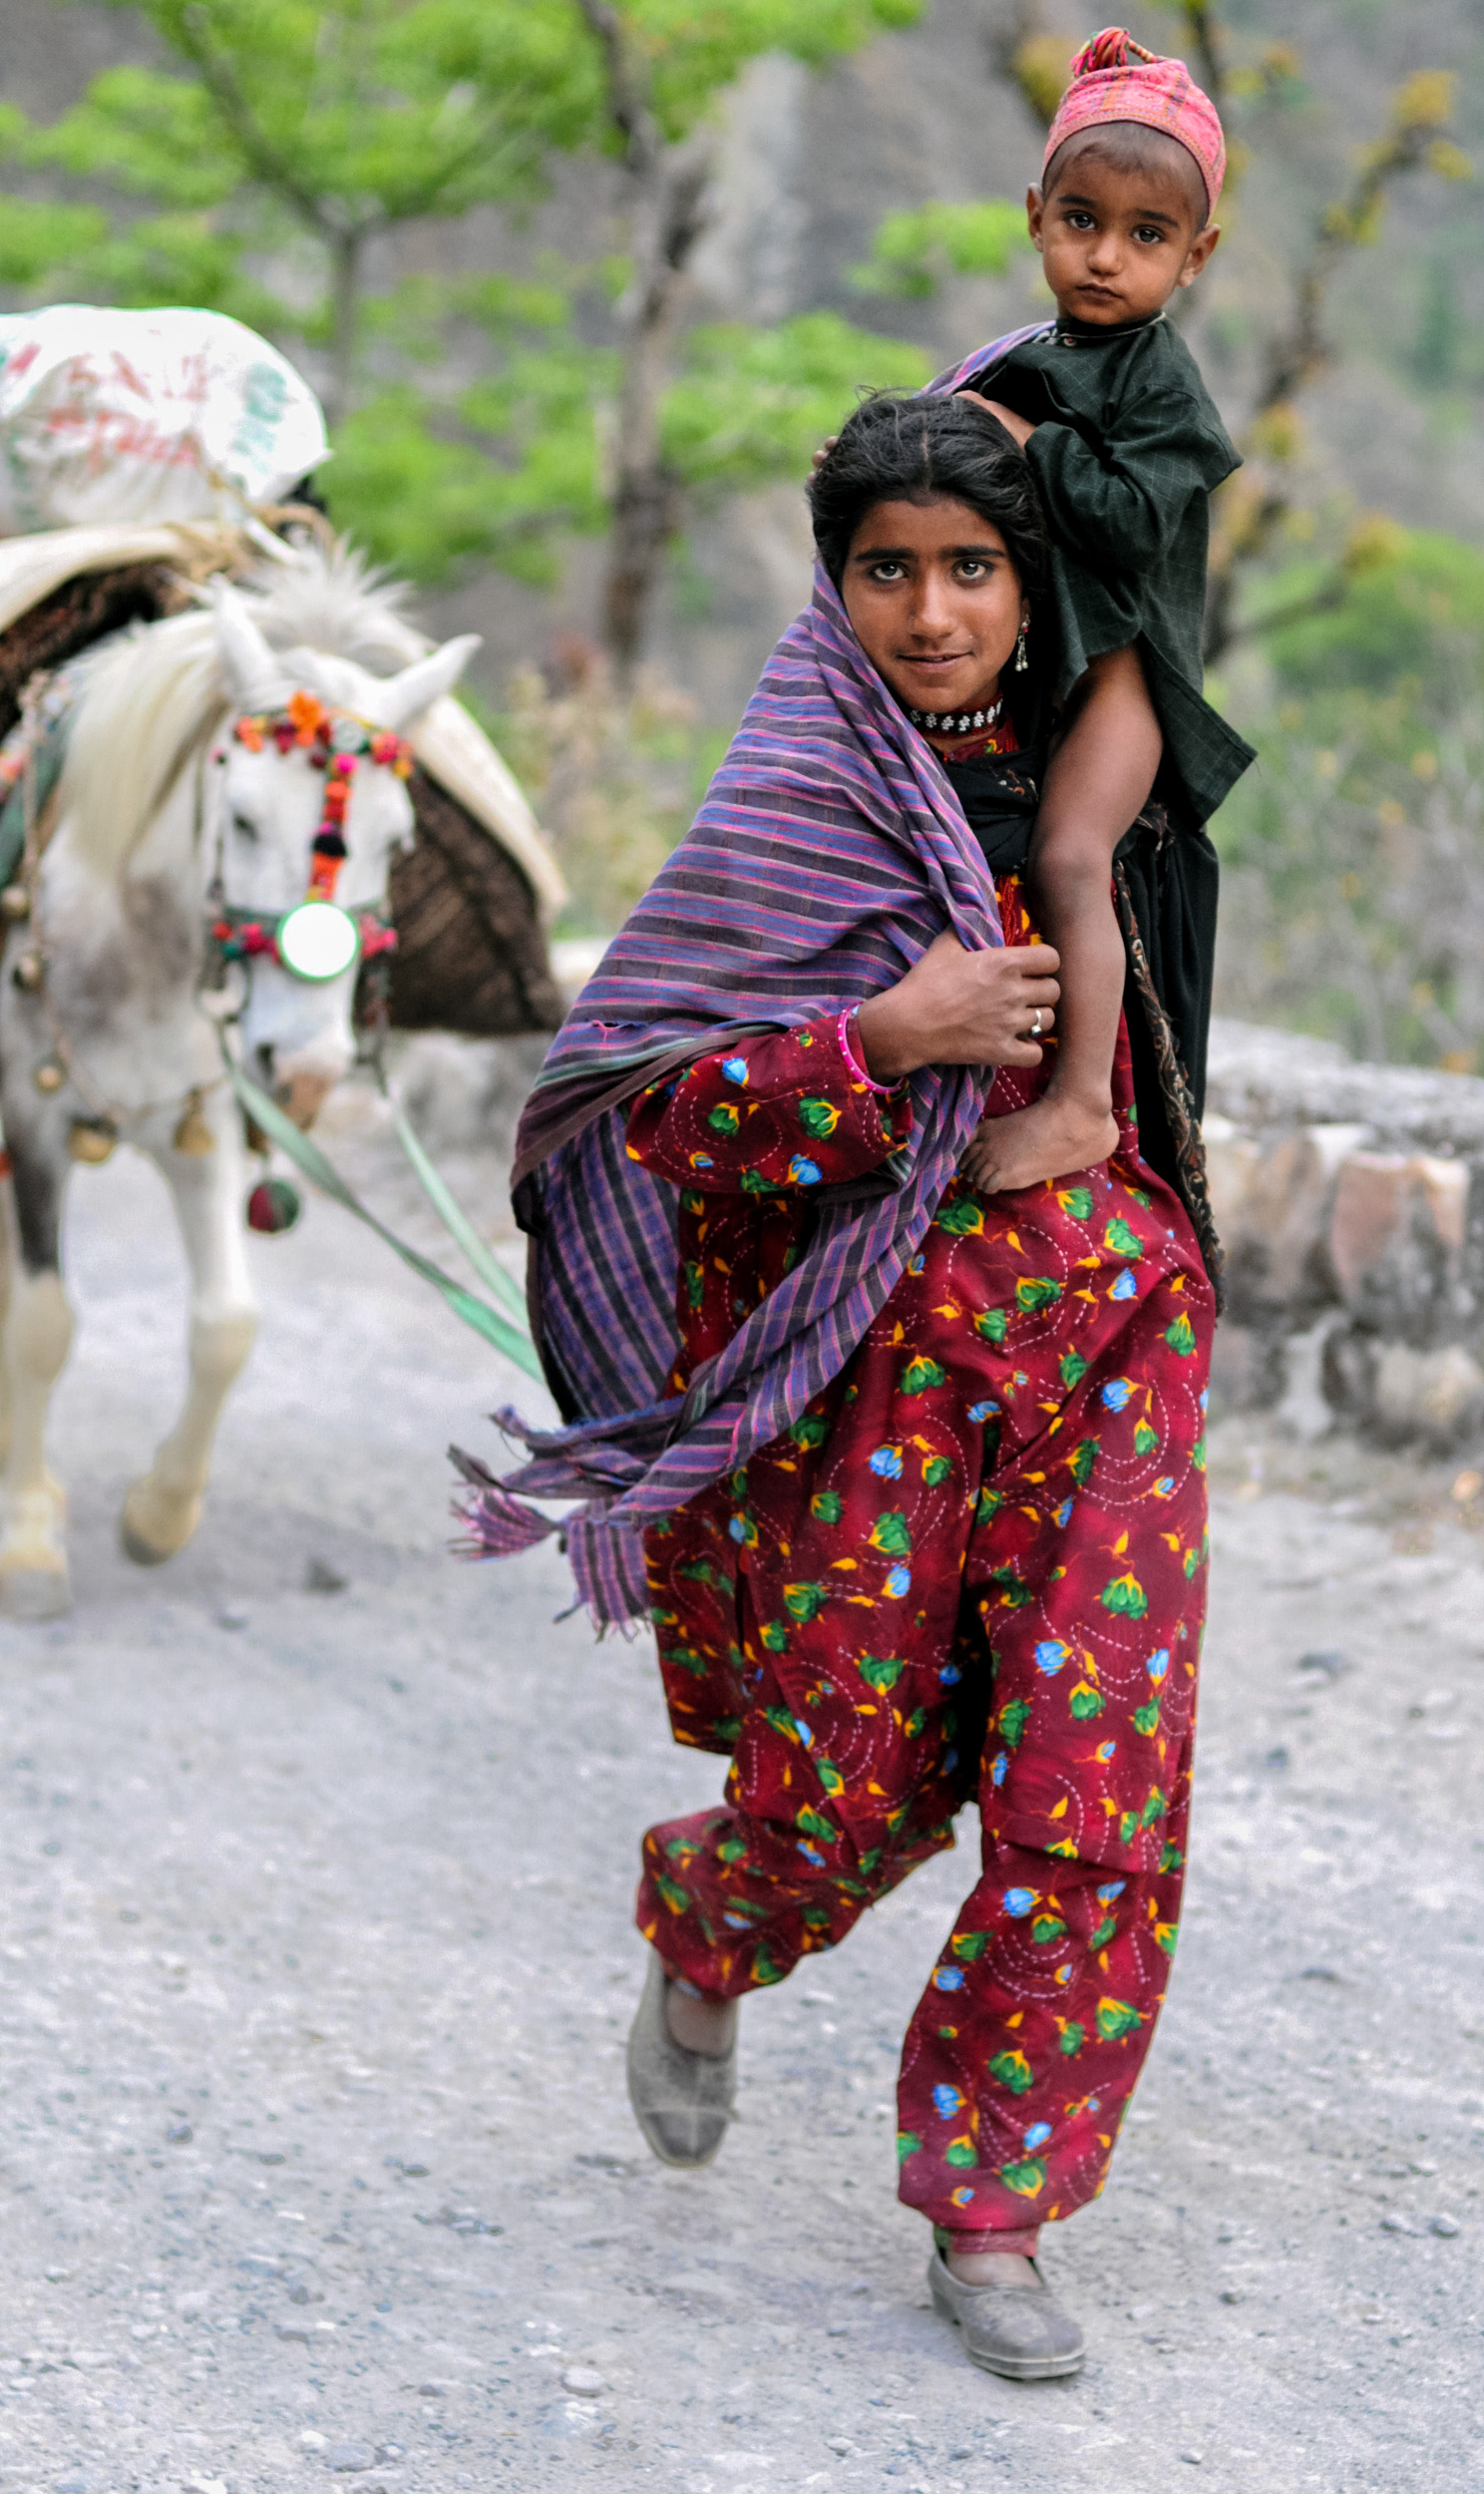 Goku leads a pack horse while carrying her brother, Yasin, as the family moves up the Yamuna Valley.